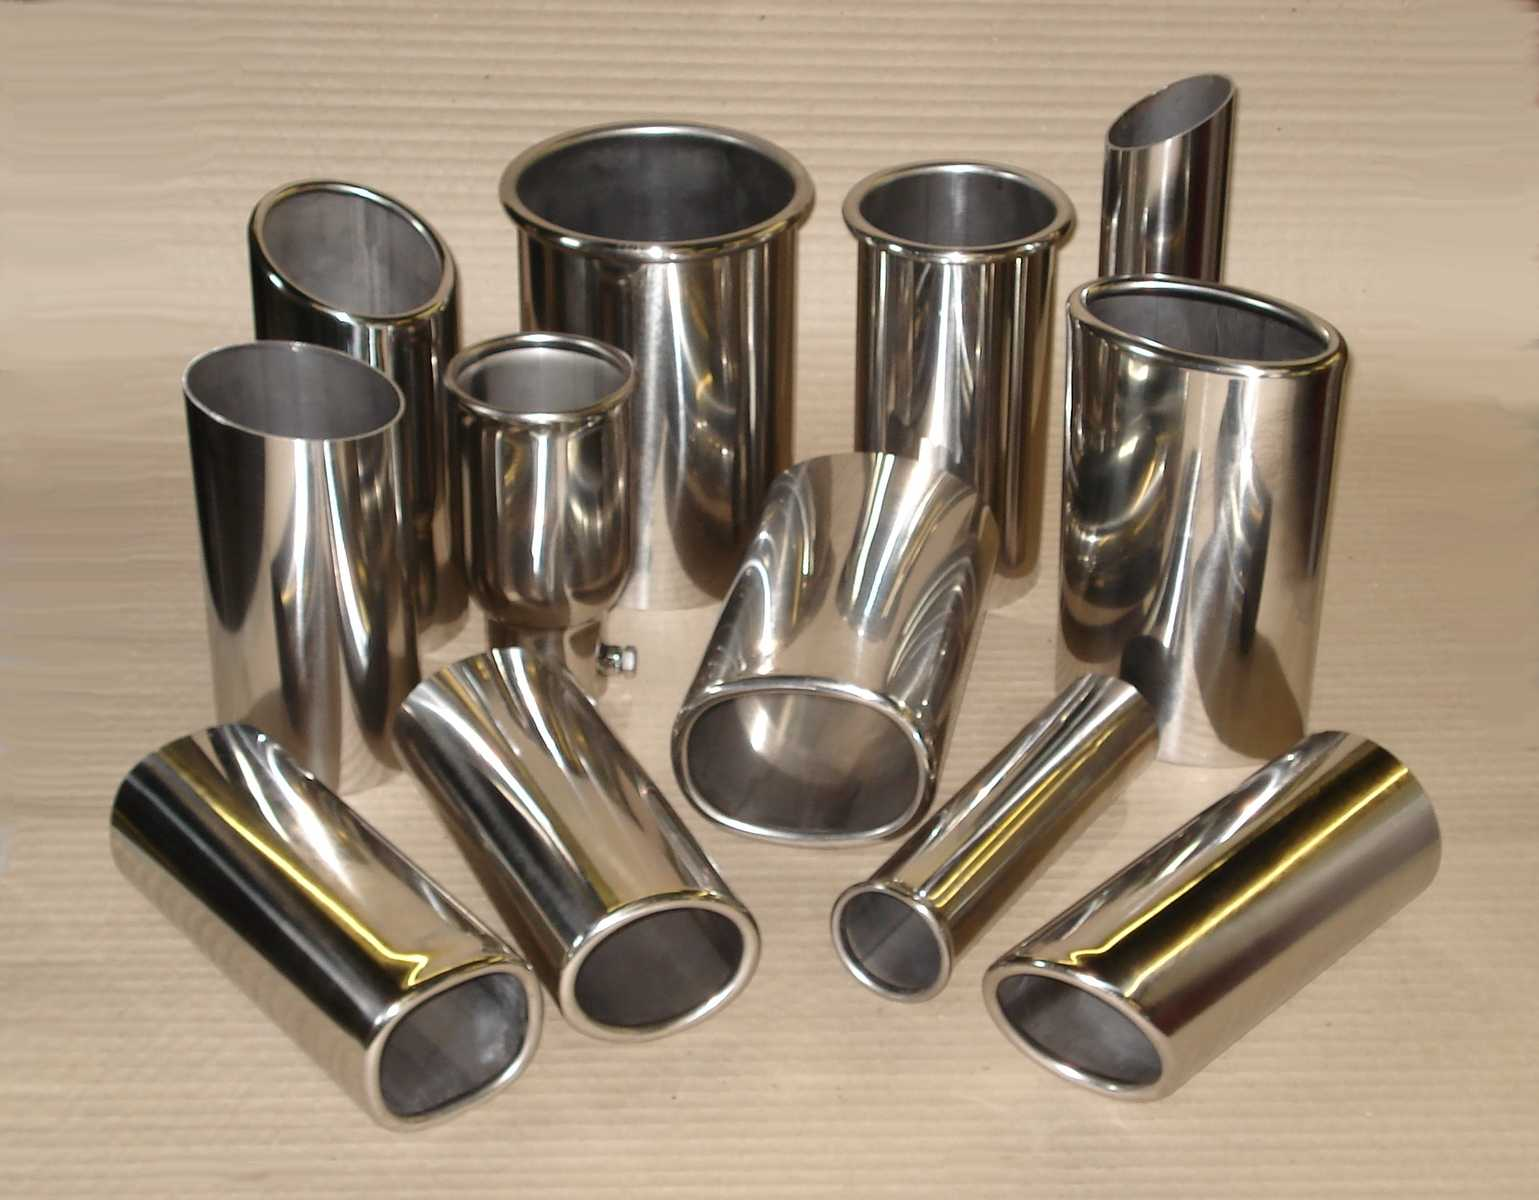 A selection of tail pipes